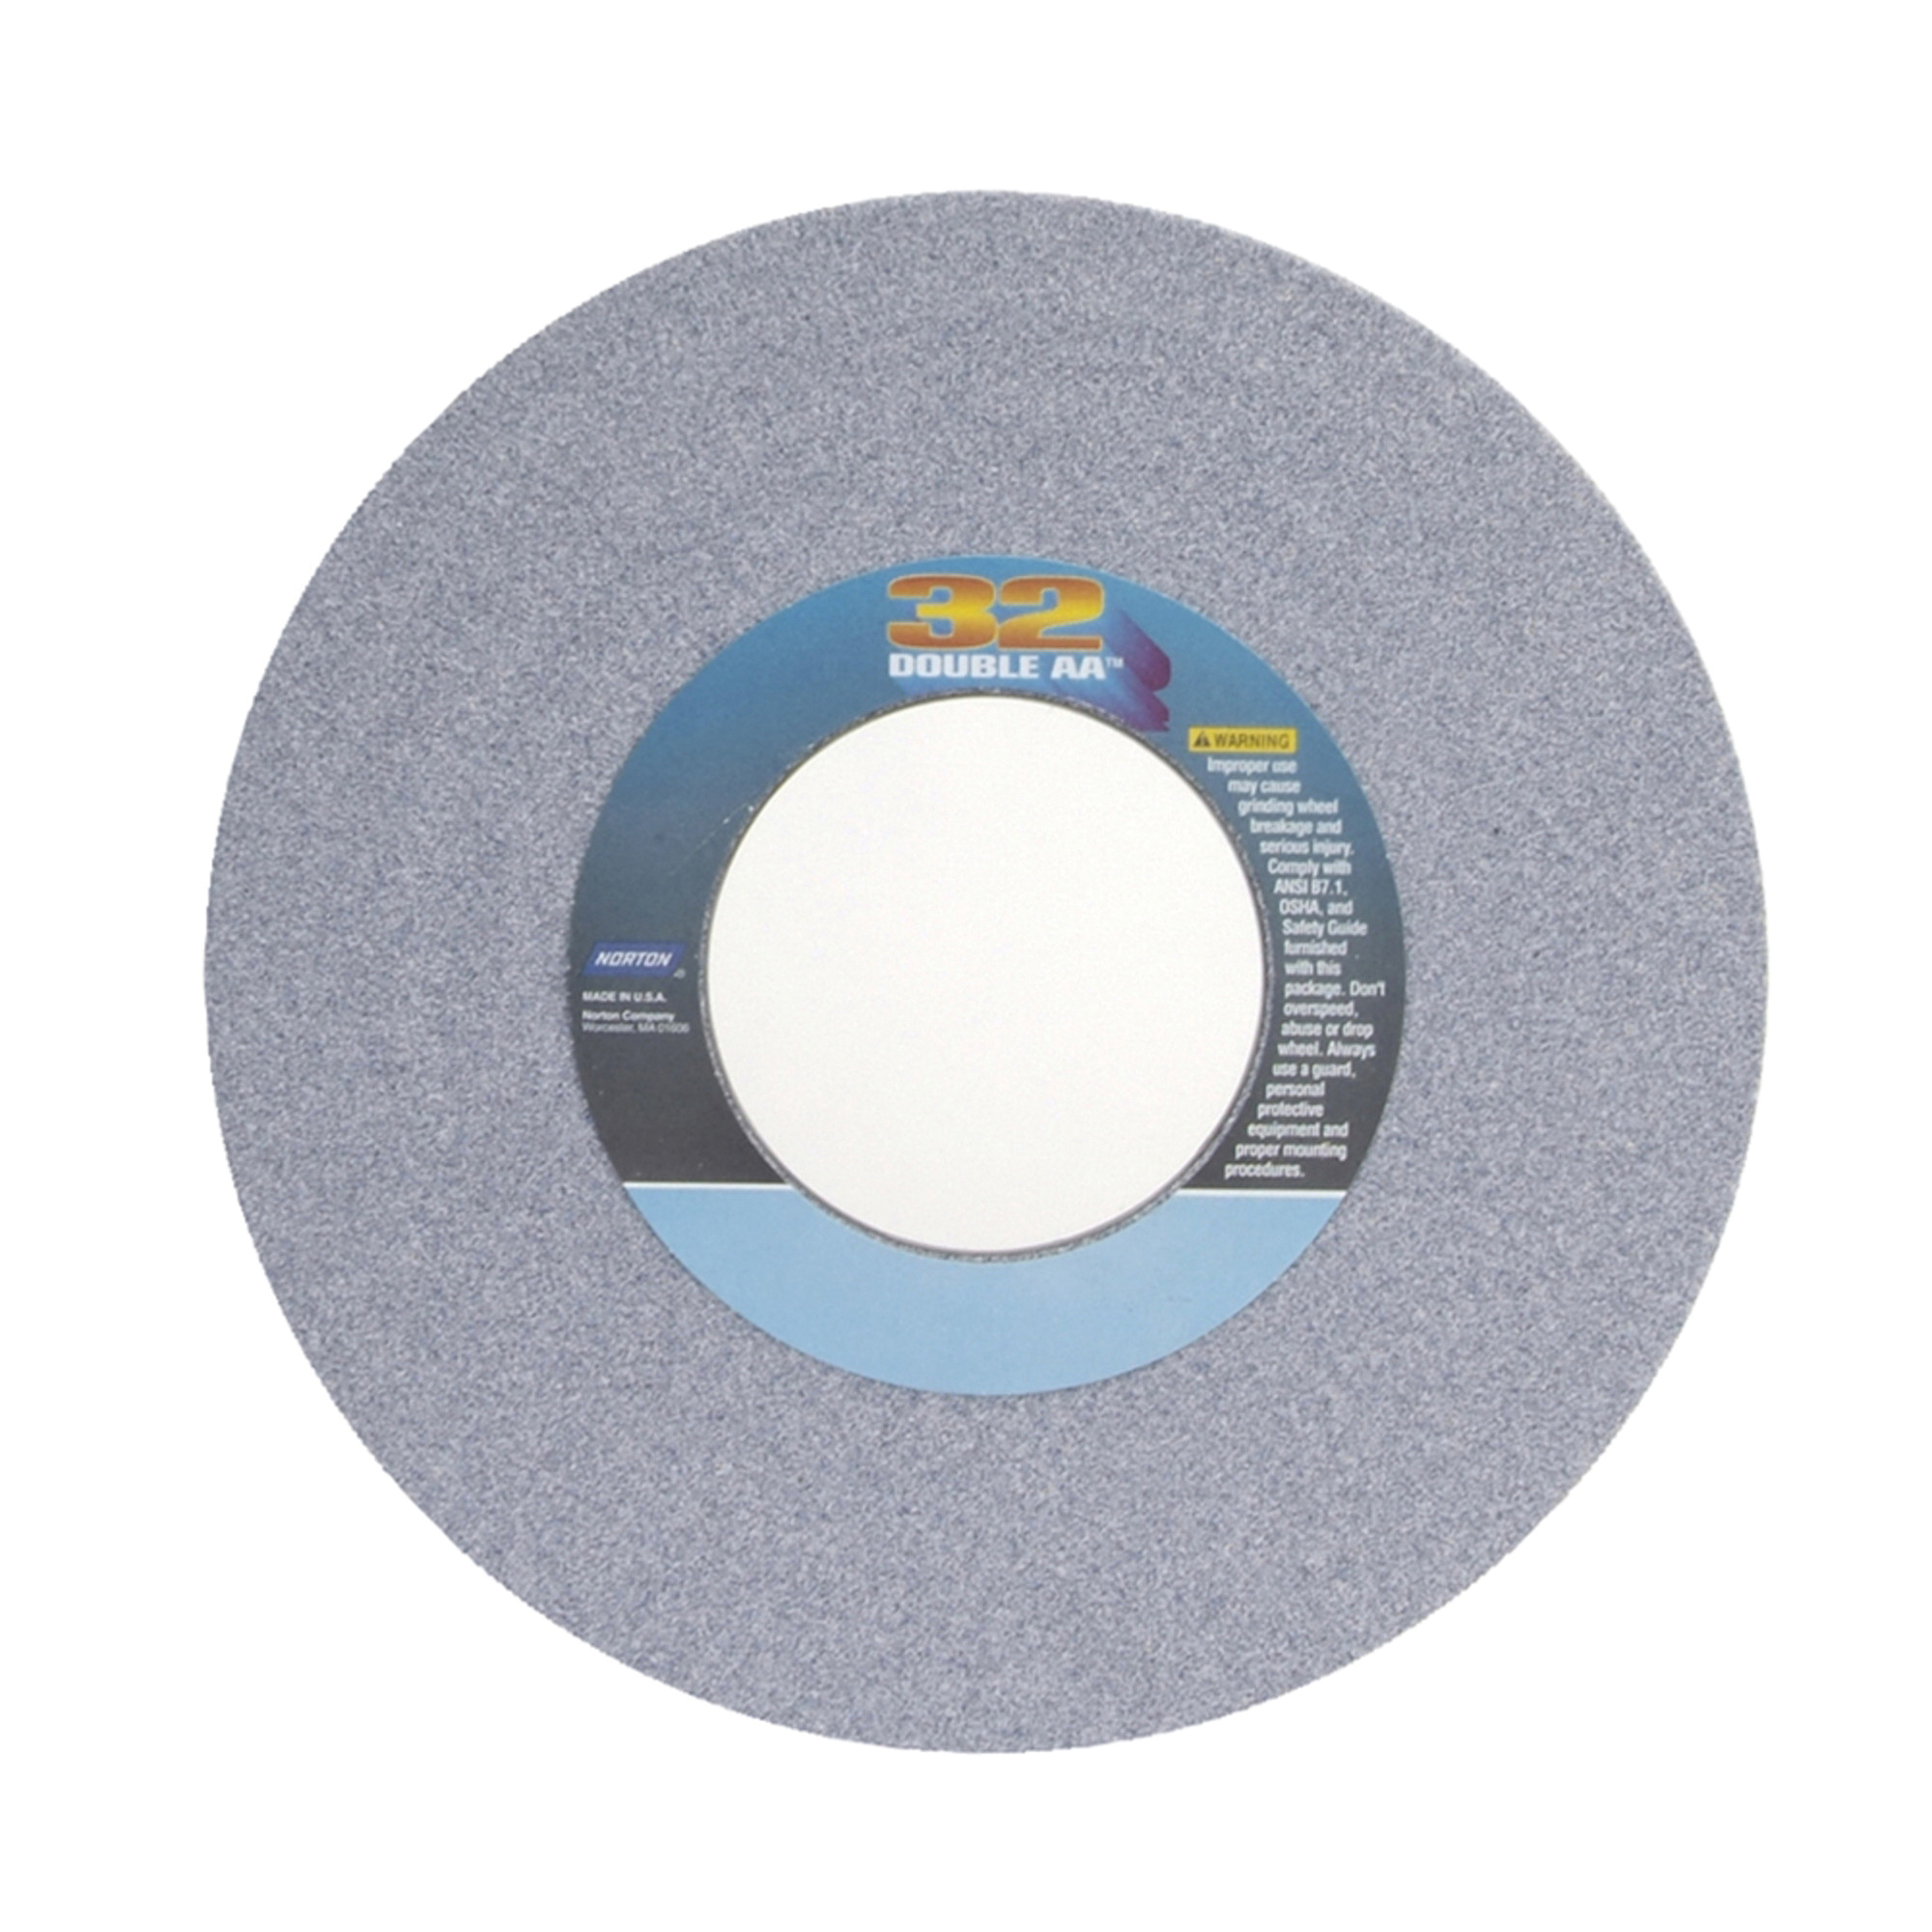 Norton® 66253306789 32AA Straight Toolroom Wheel, 14 in Dia x 1 in THK, 5 in Center Hole, 60 Grit, Aluminum Oxide Abrasive